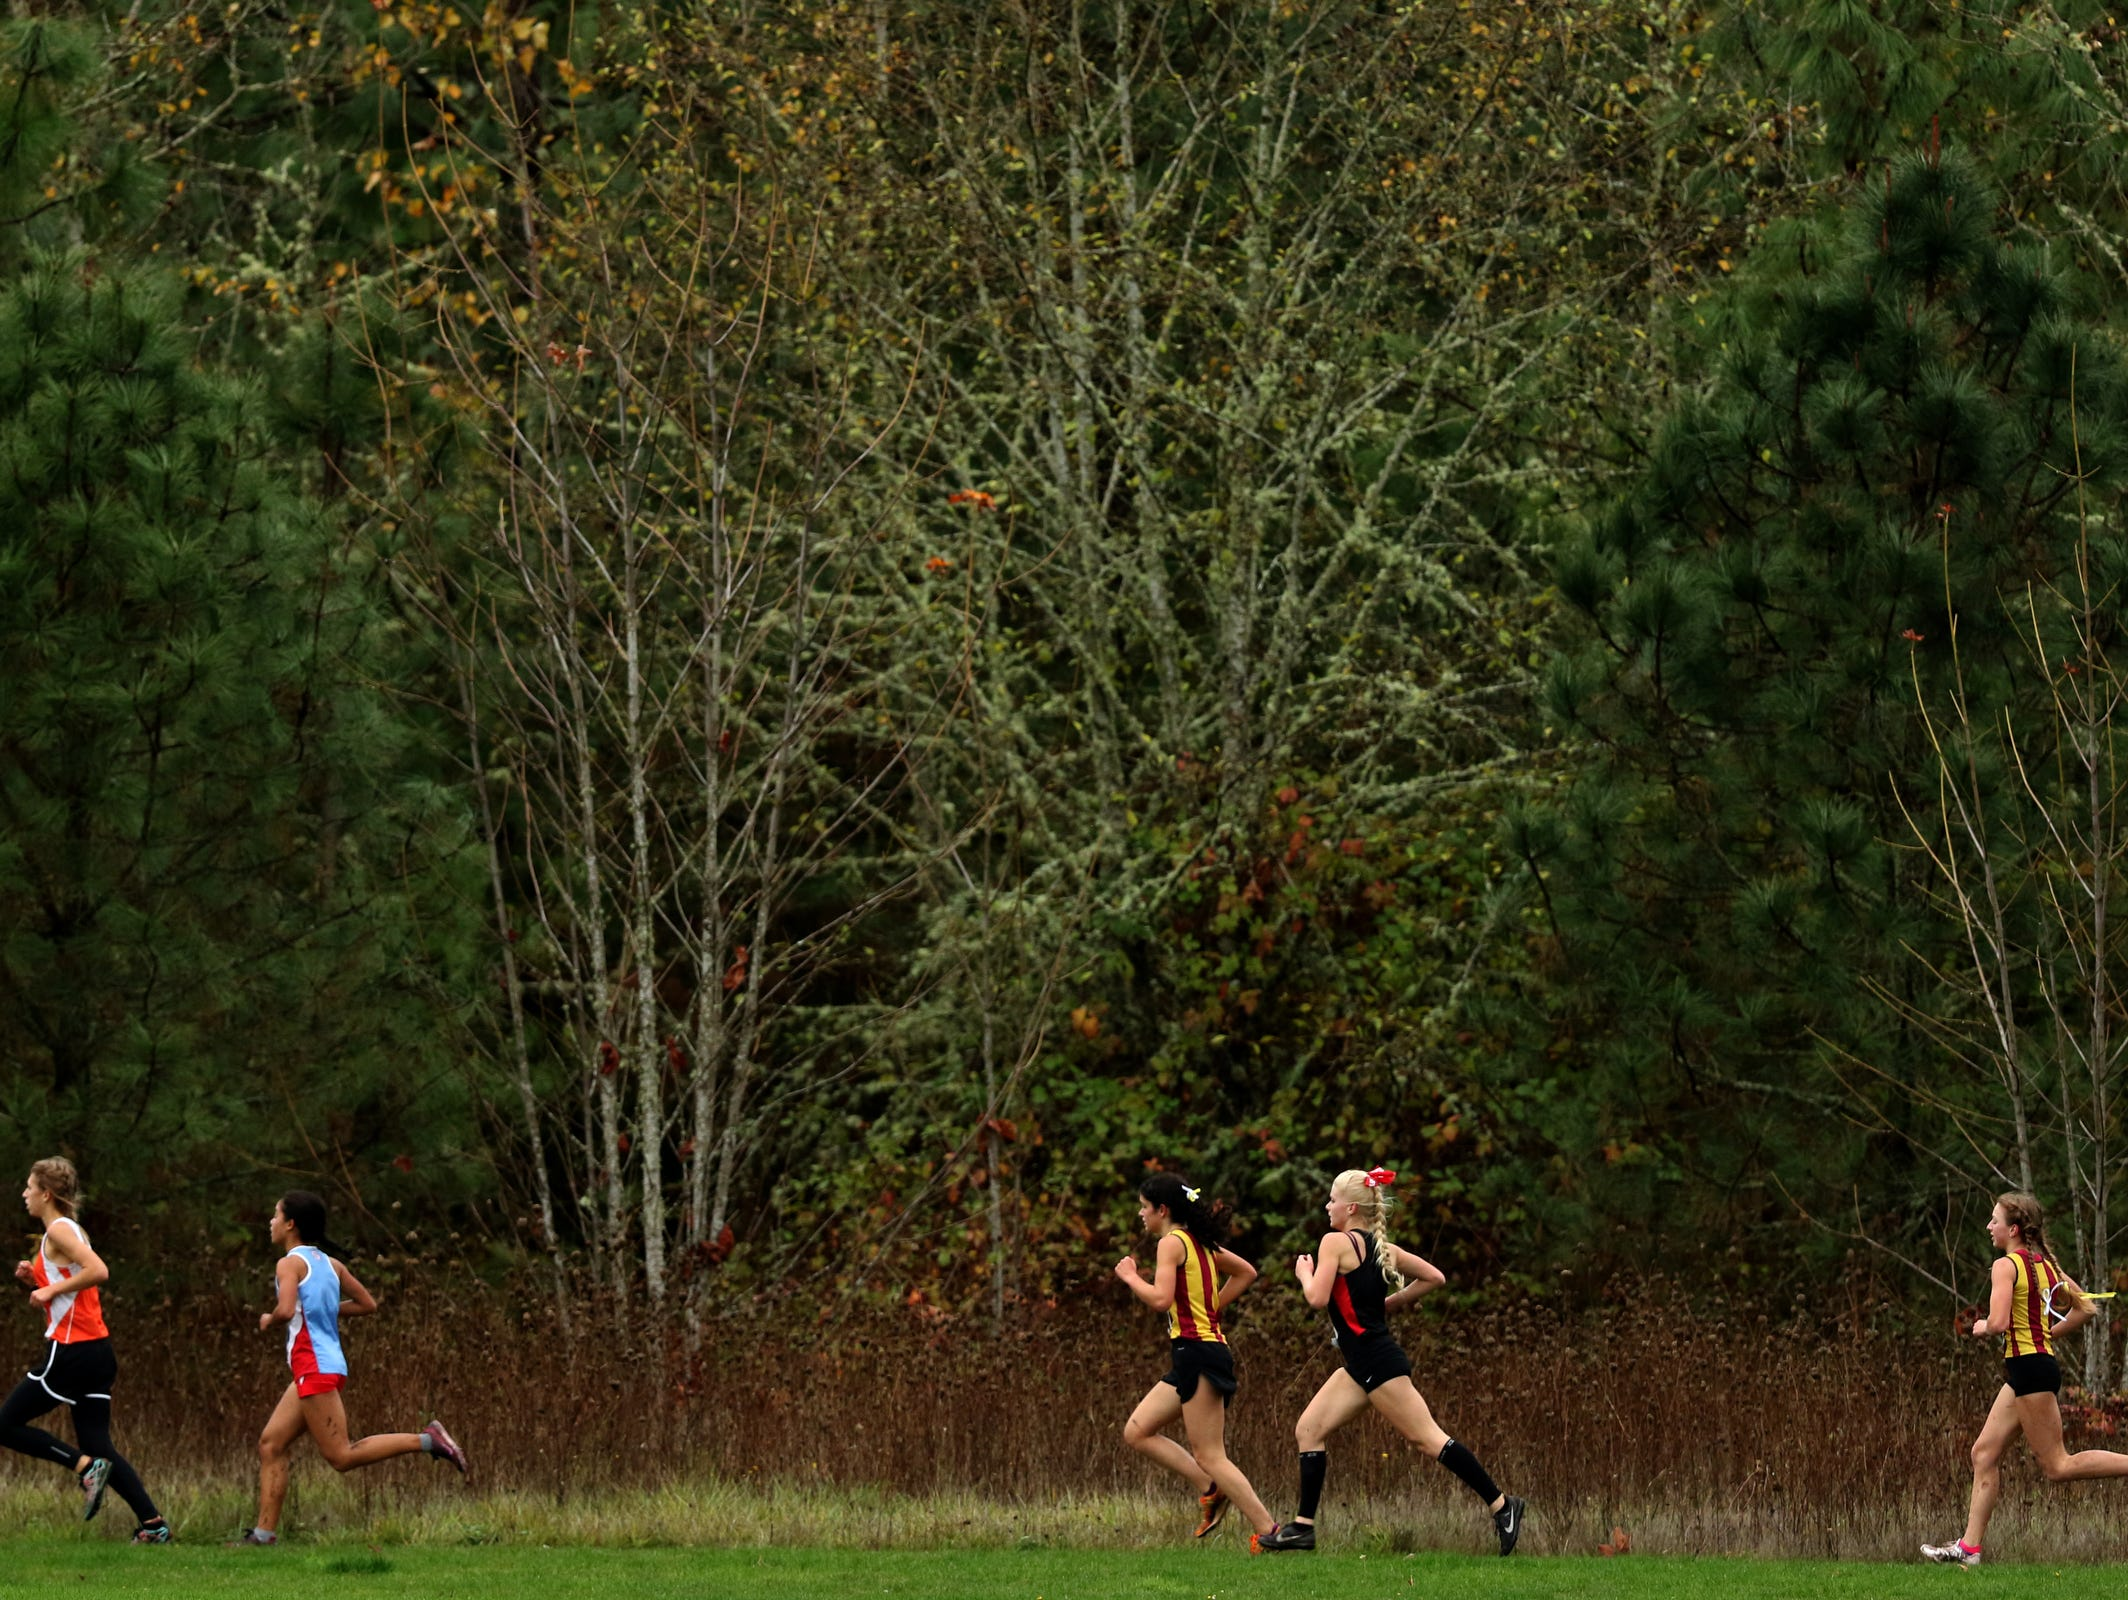 Runners compete in the Greater Valley Conference championship girl's 5K race at the Crystal Lake Sports Park in Corvallis on Wednesday, Oct. 26, 2016. Sprague's Ginger Murnieks finished first.